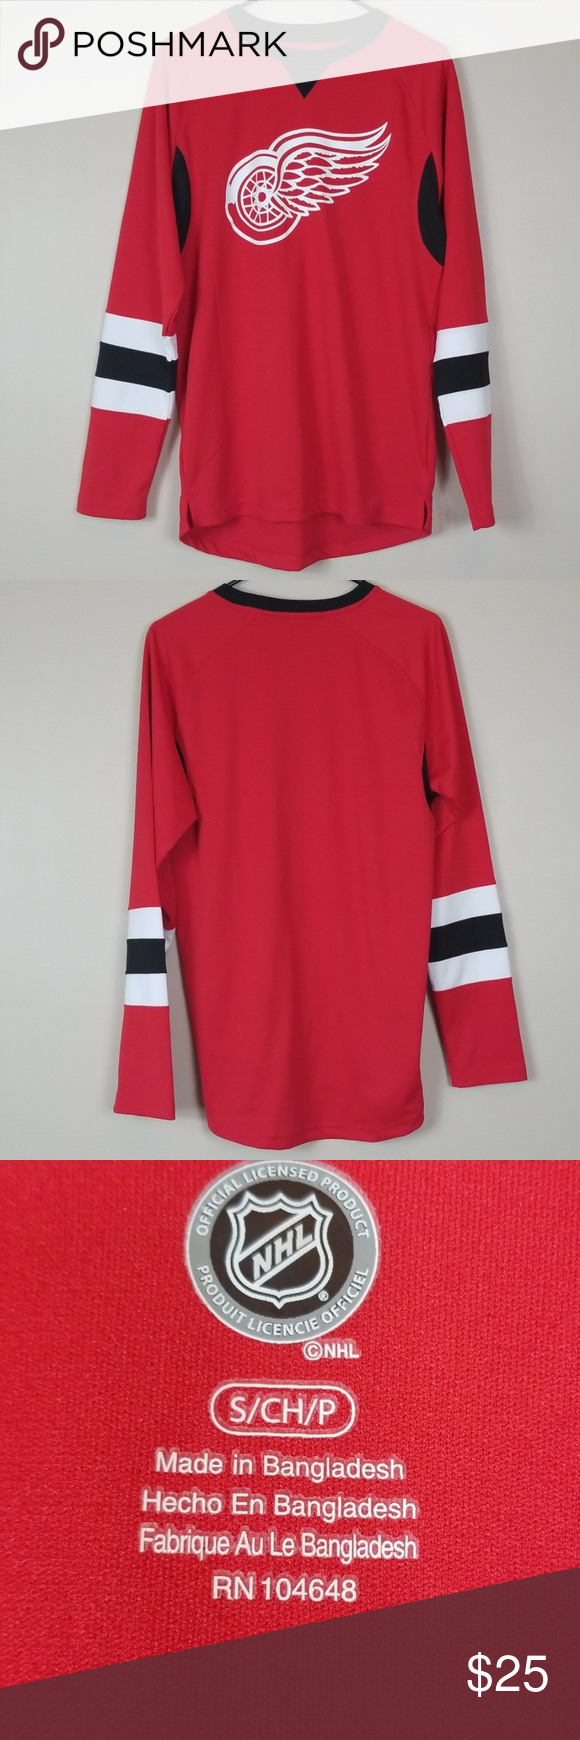 Nhl Jersey Size Small Nhl Jersey Size Small In Great Condition With No Imperfections Sizing Armpit To Armpit 20 Sl Clothes Design Fashion Design Size Small